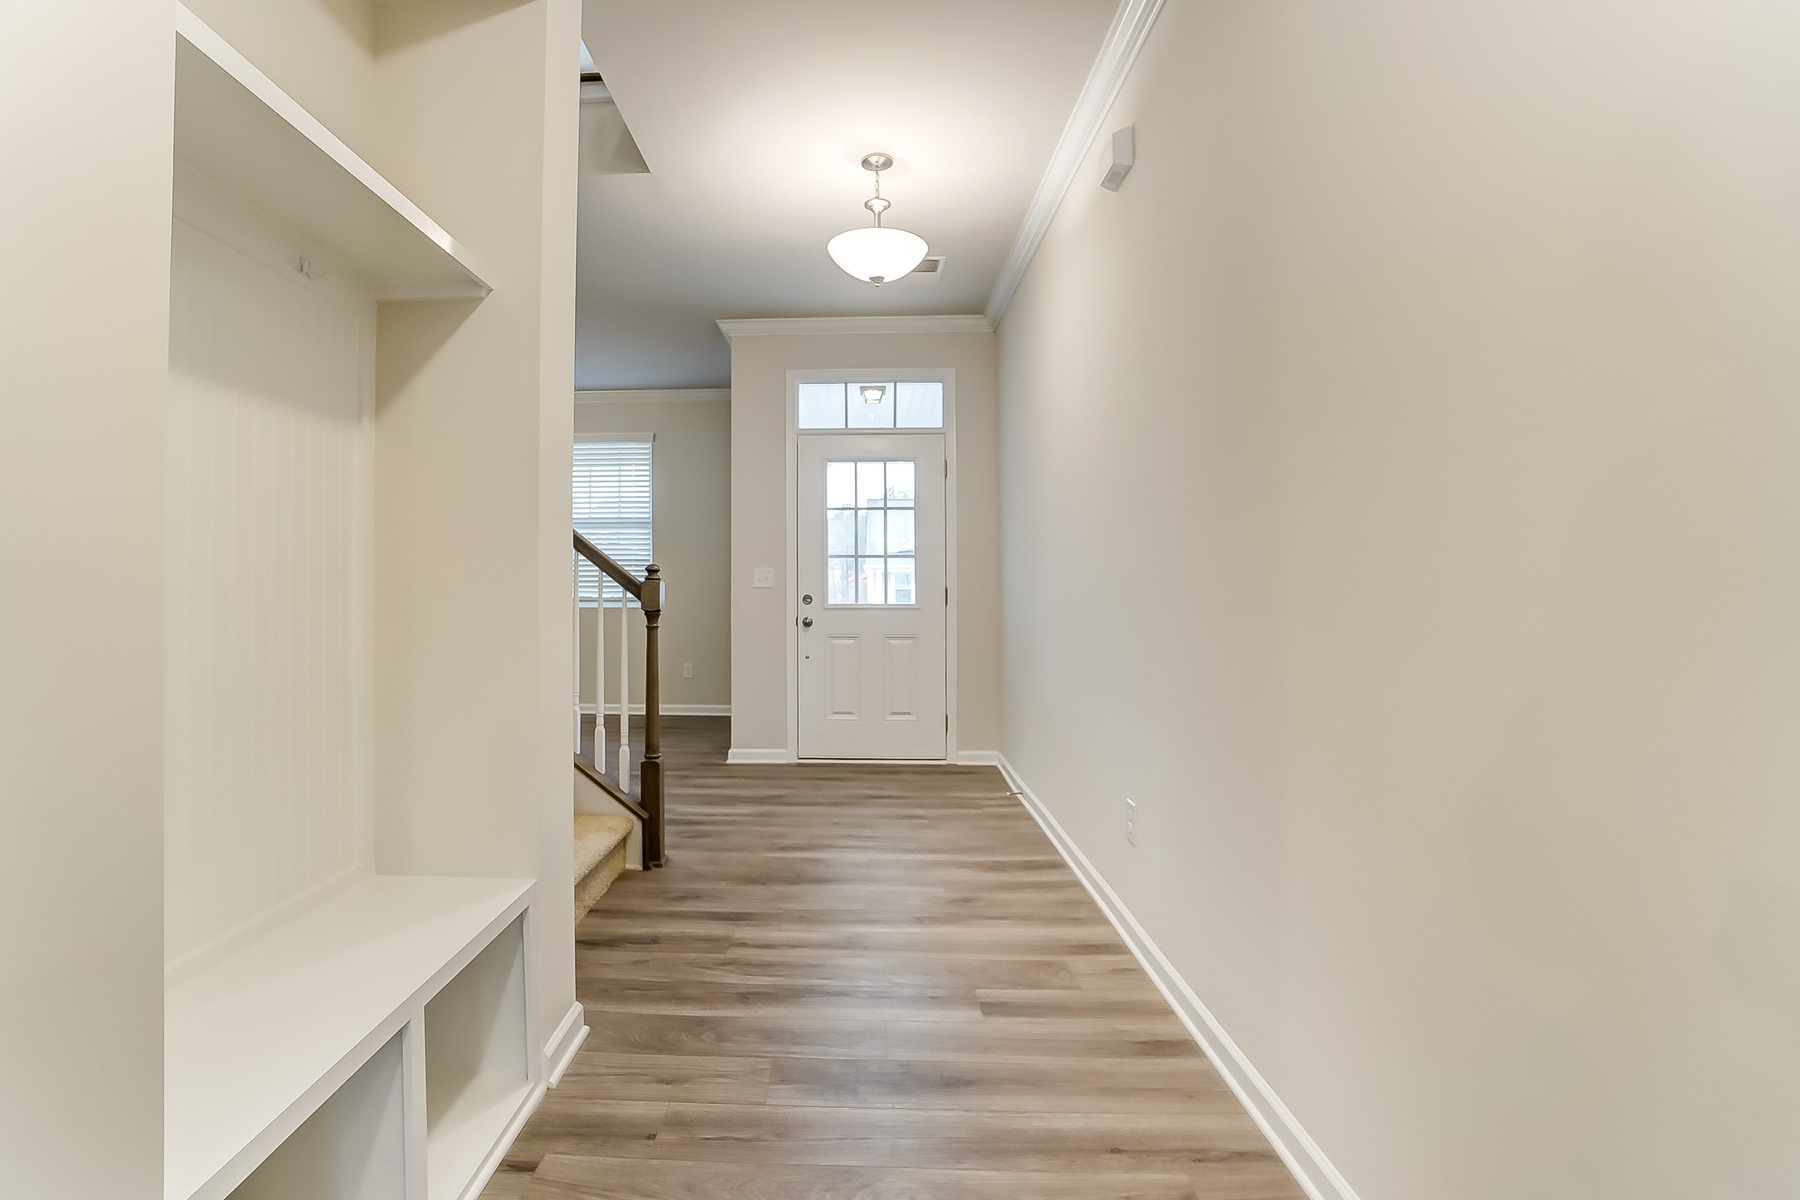 Gaines Plan Foyer at Ridgewater in Charlotte North Carolina by Mattamy Homes